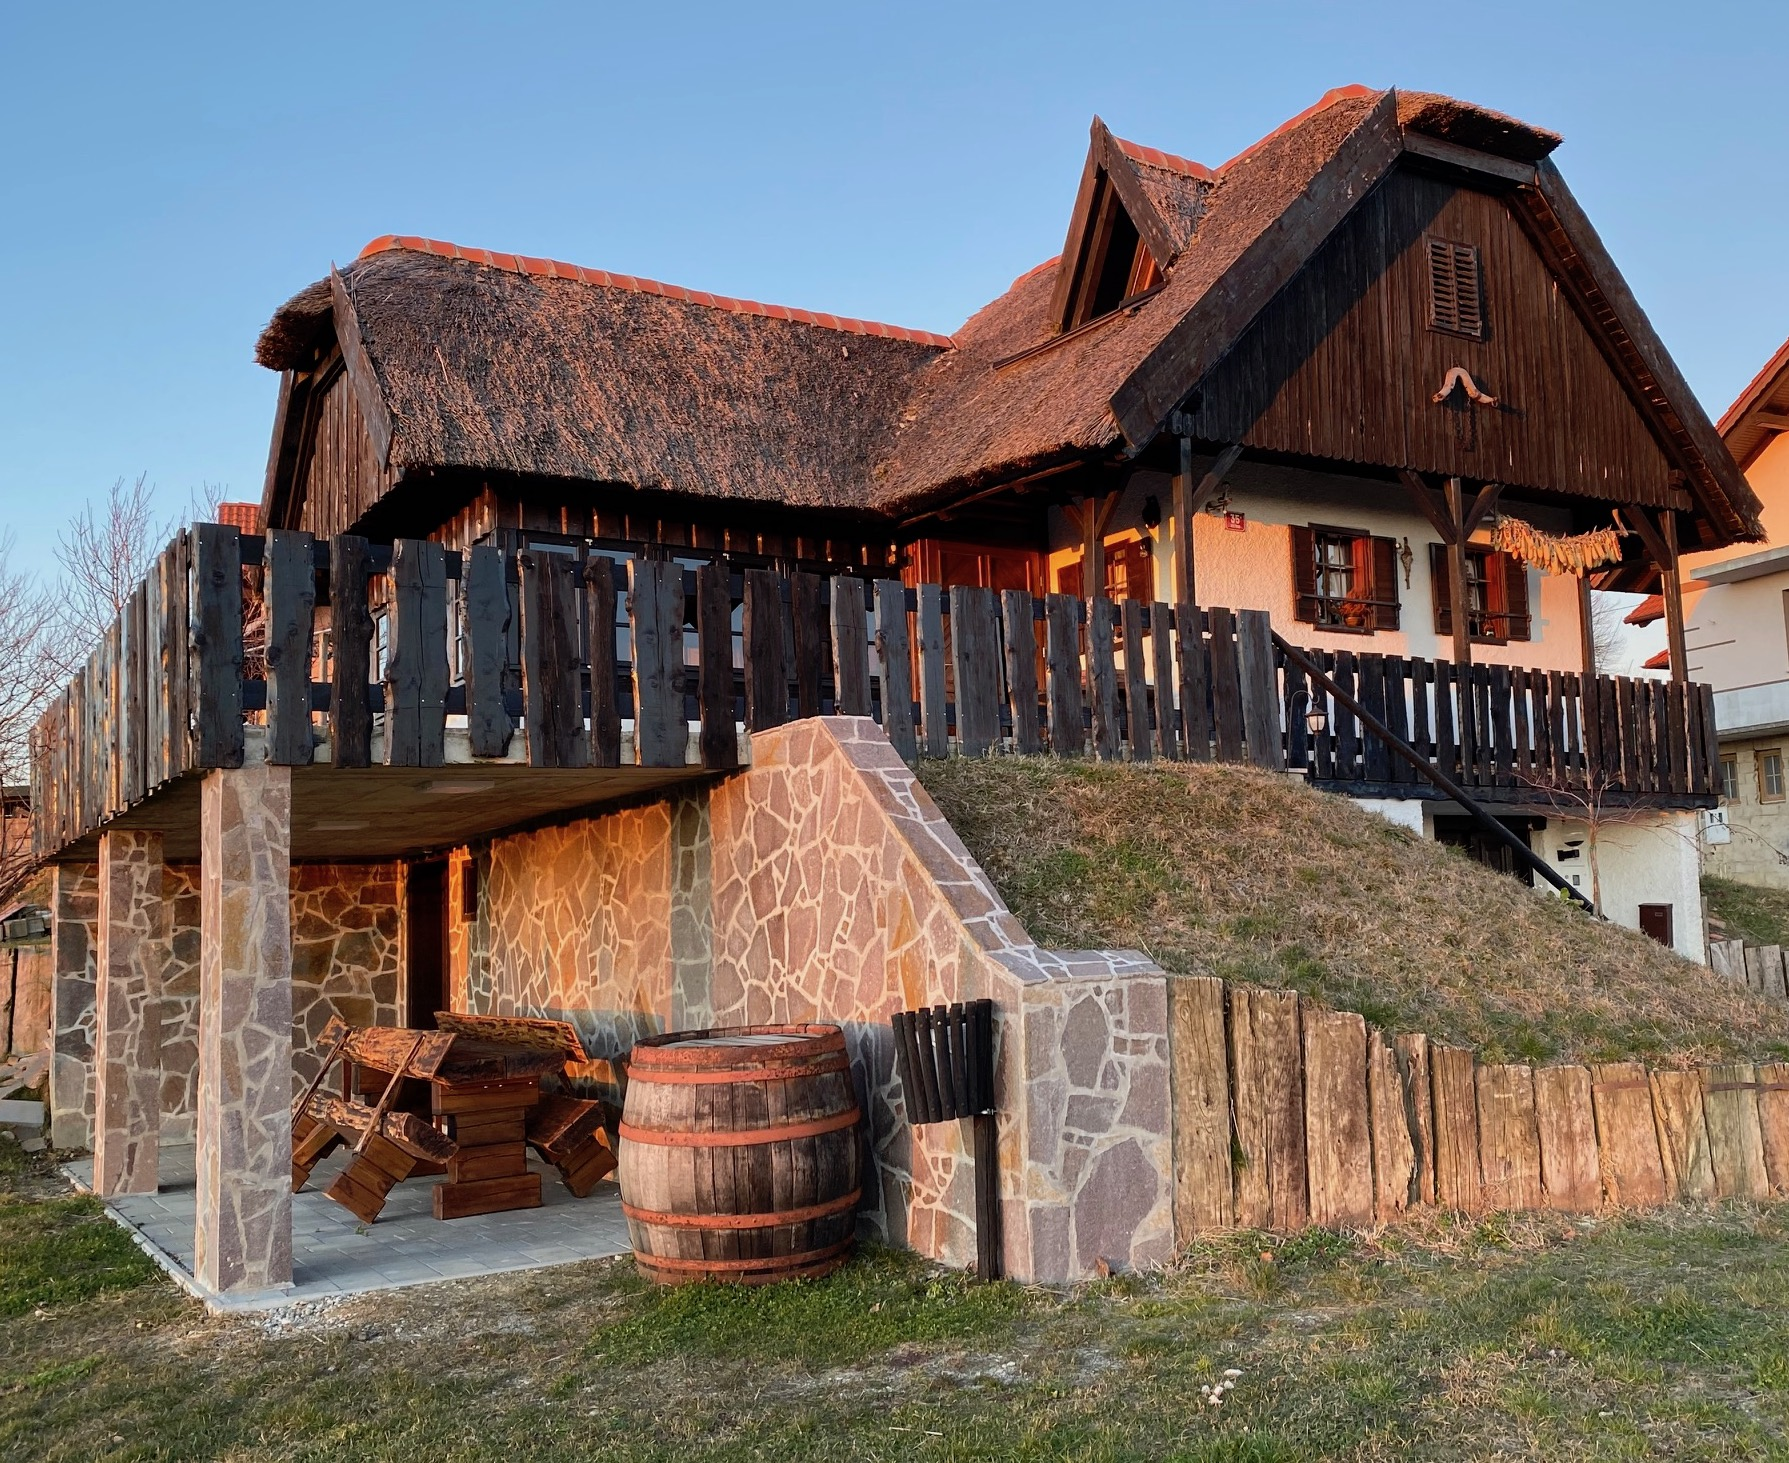 Vineyard Cottage Jursinci Slovenia.jpg